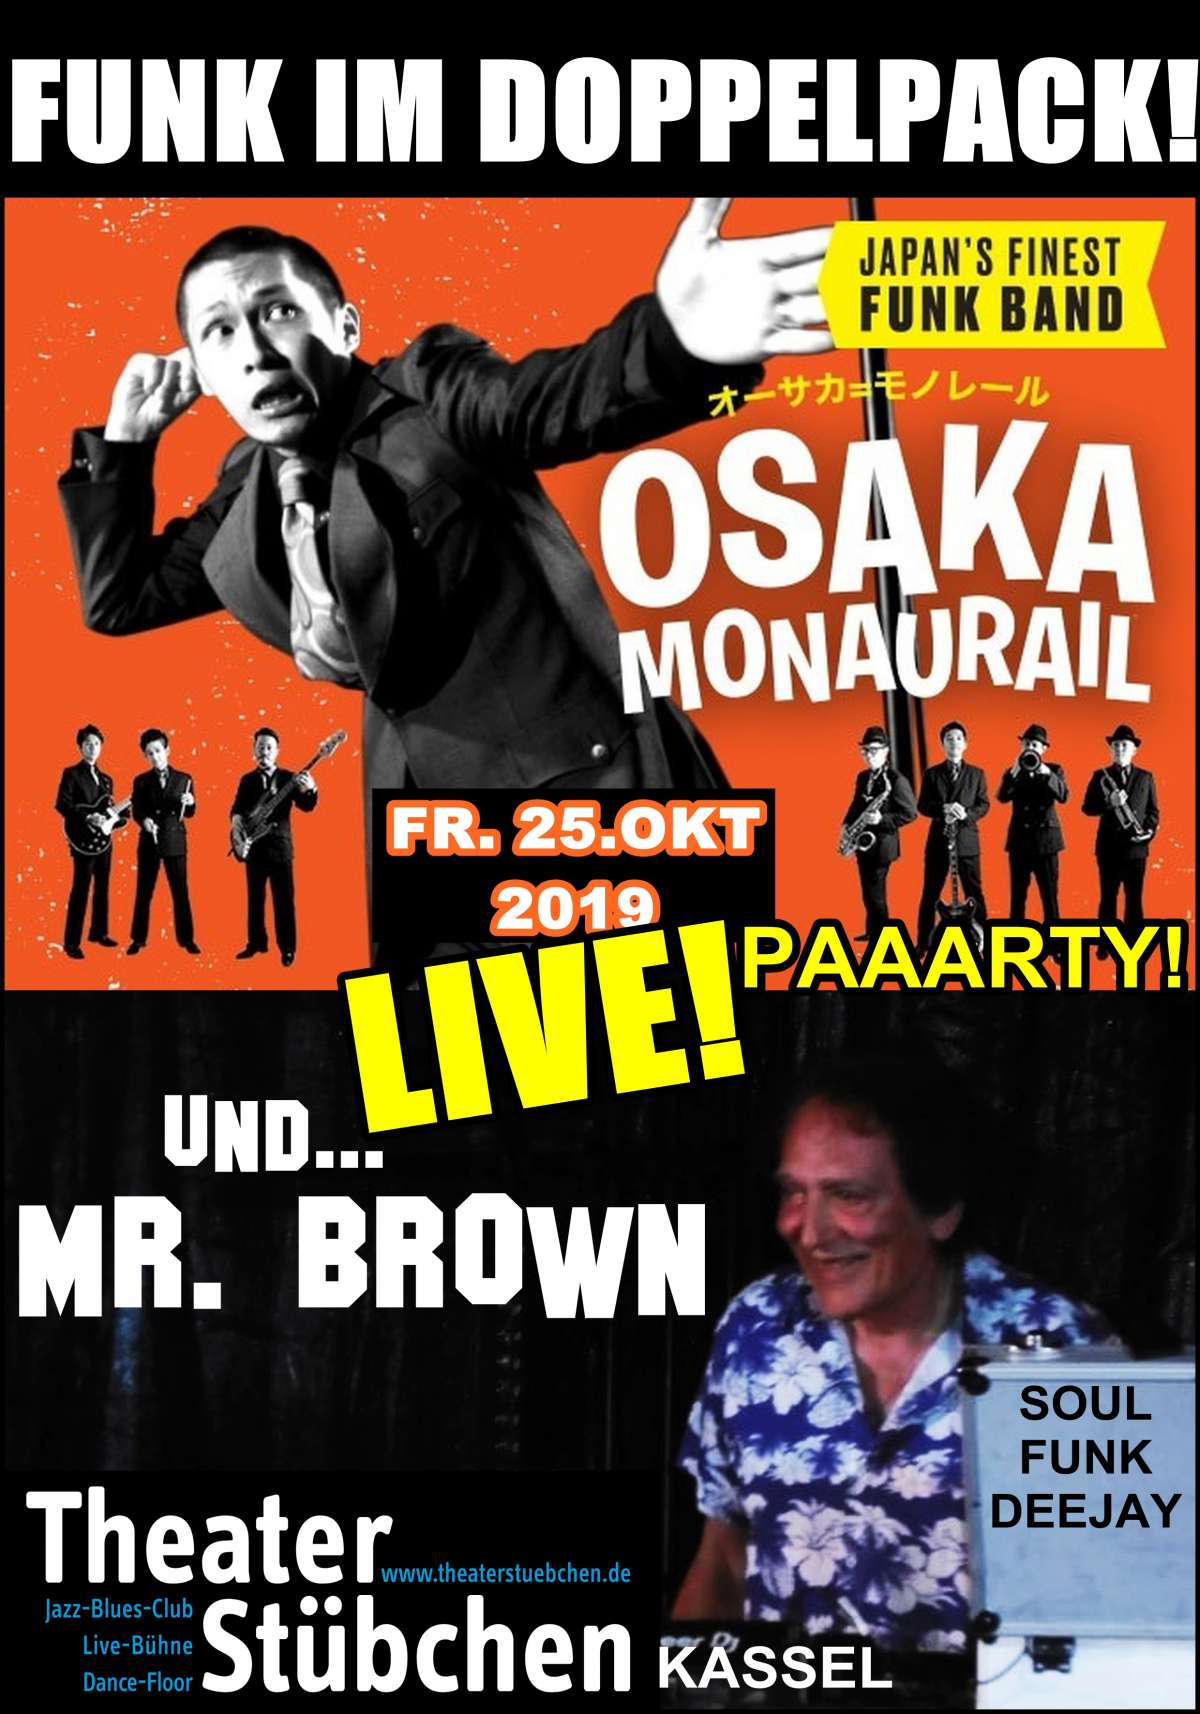 Funk Party mit Live Show - OSAKA MONAURAIL (Japan) & Mr. Brown - Theaterstübchen - Kassel